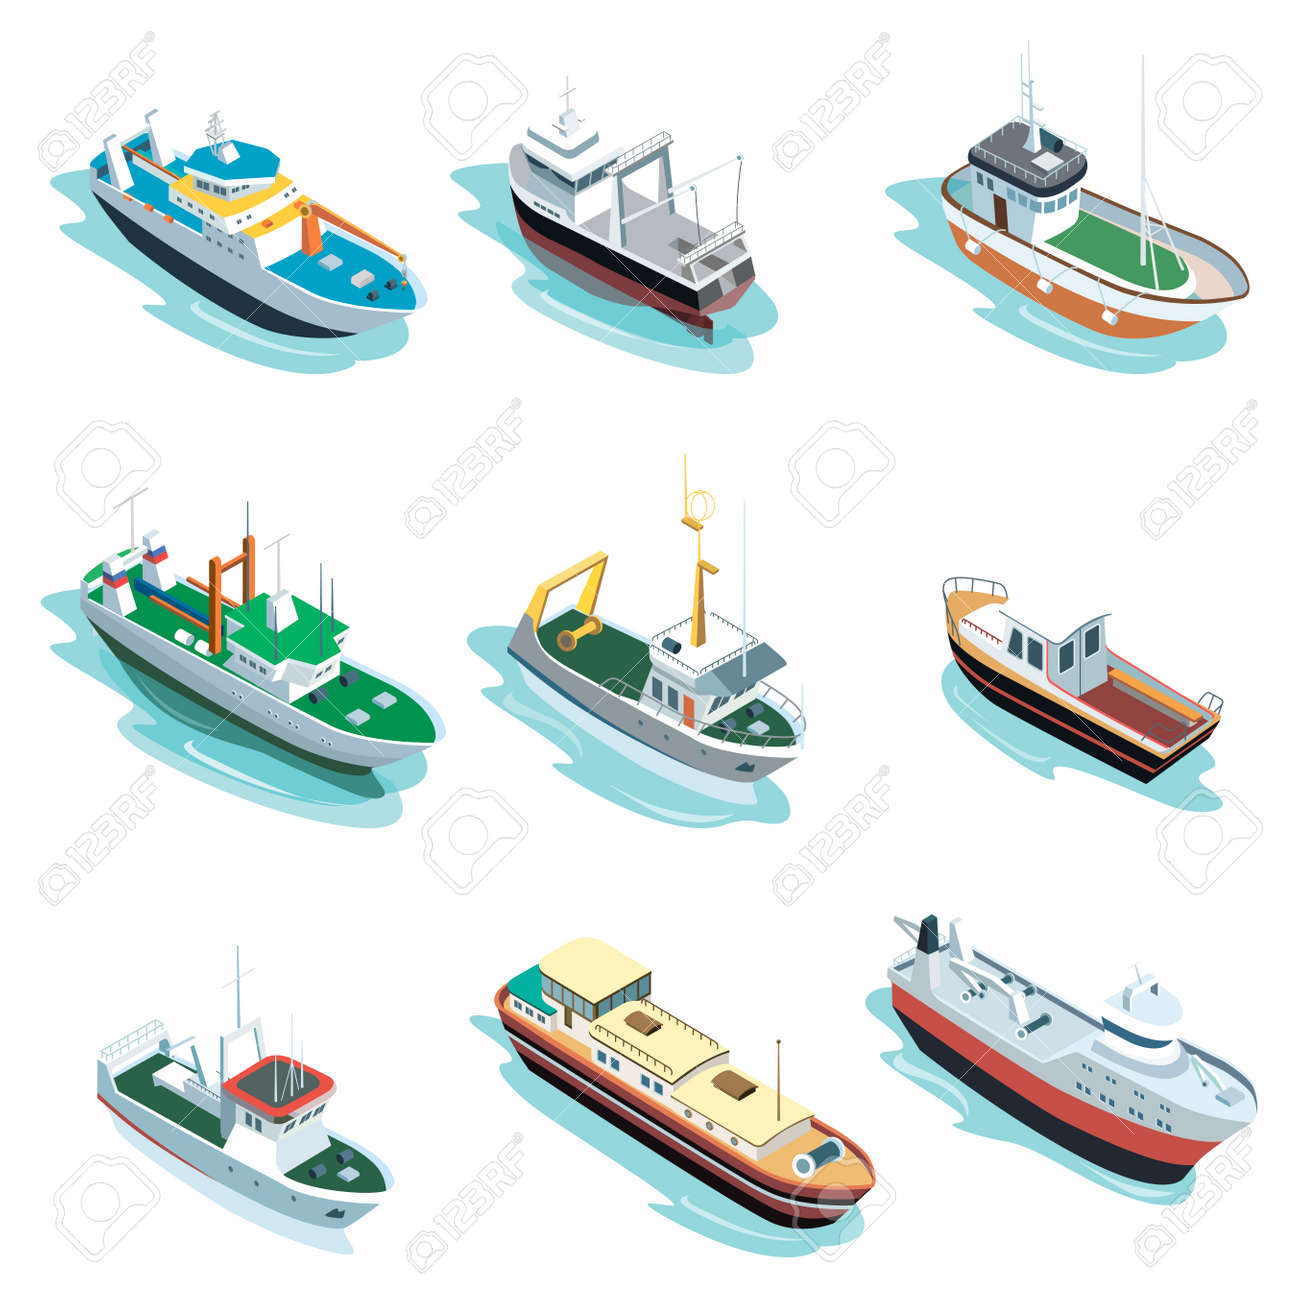 Commercial sea ships isometric 3D elements - 113332915